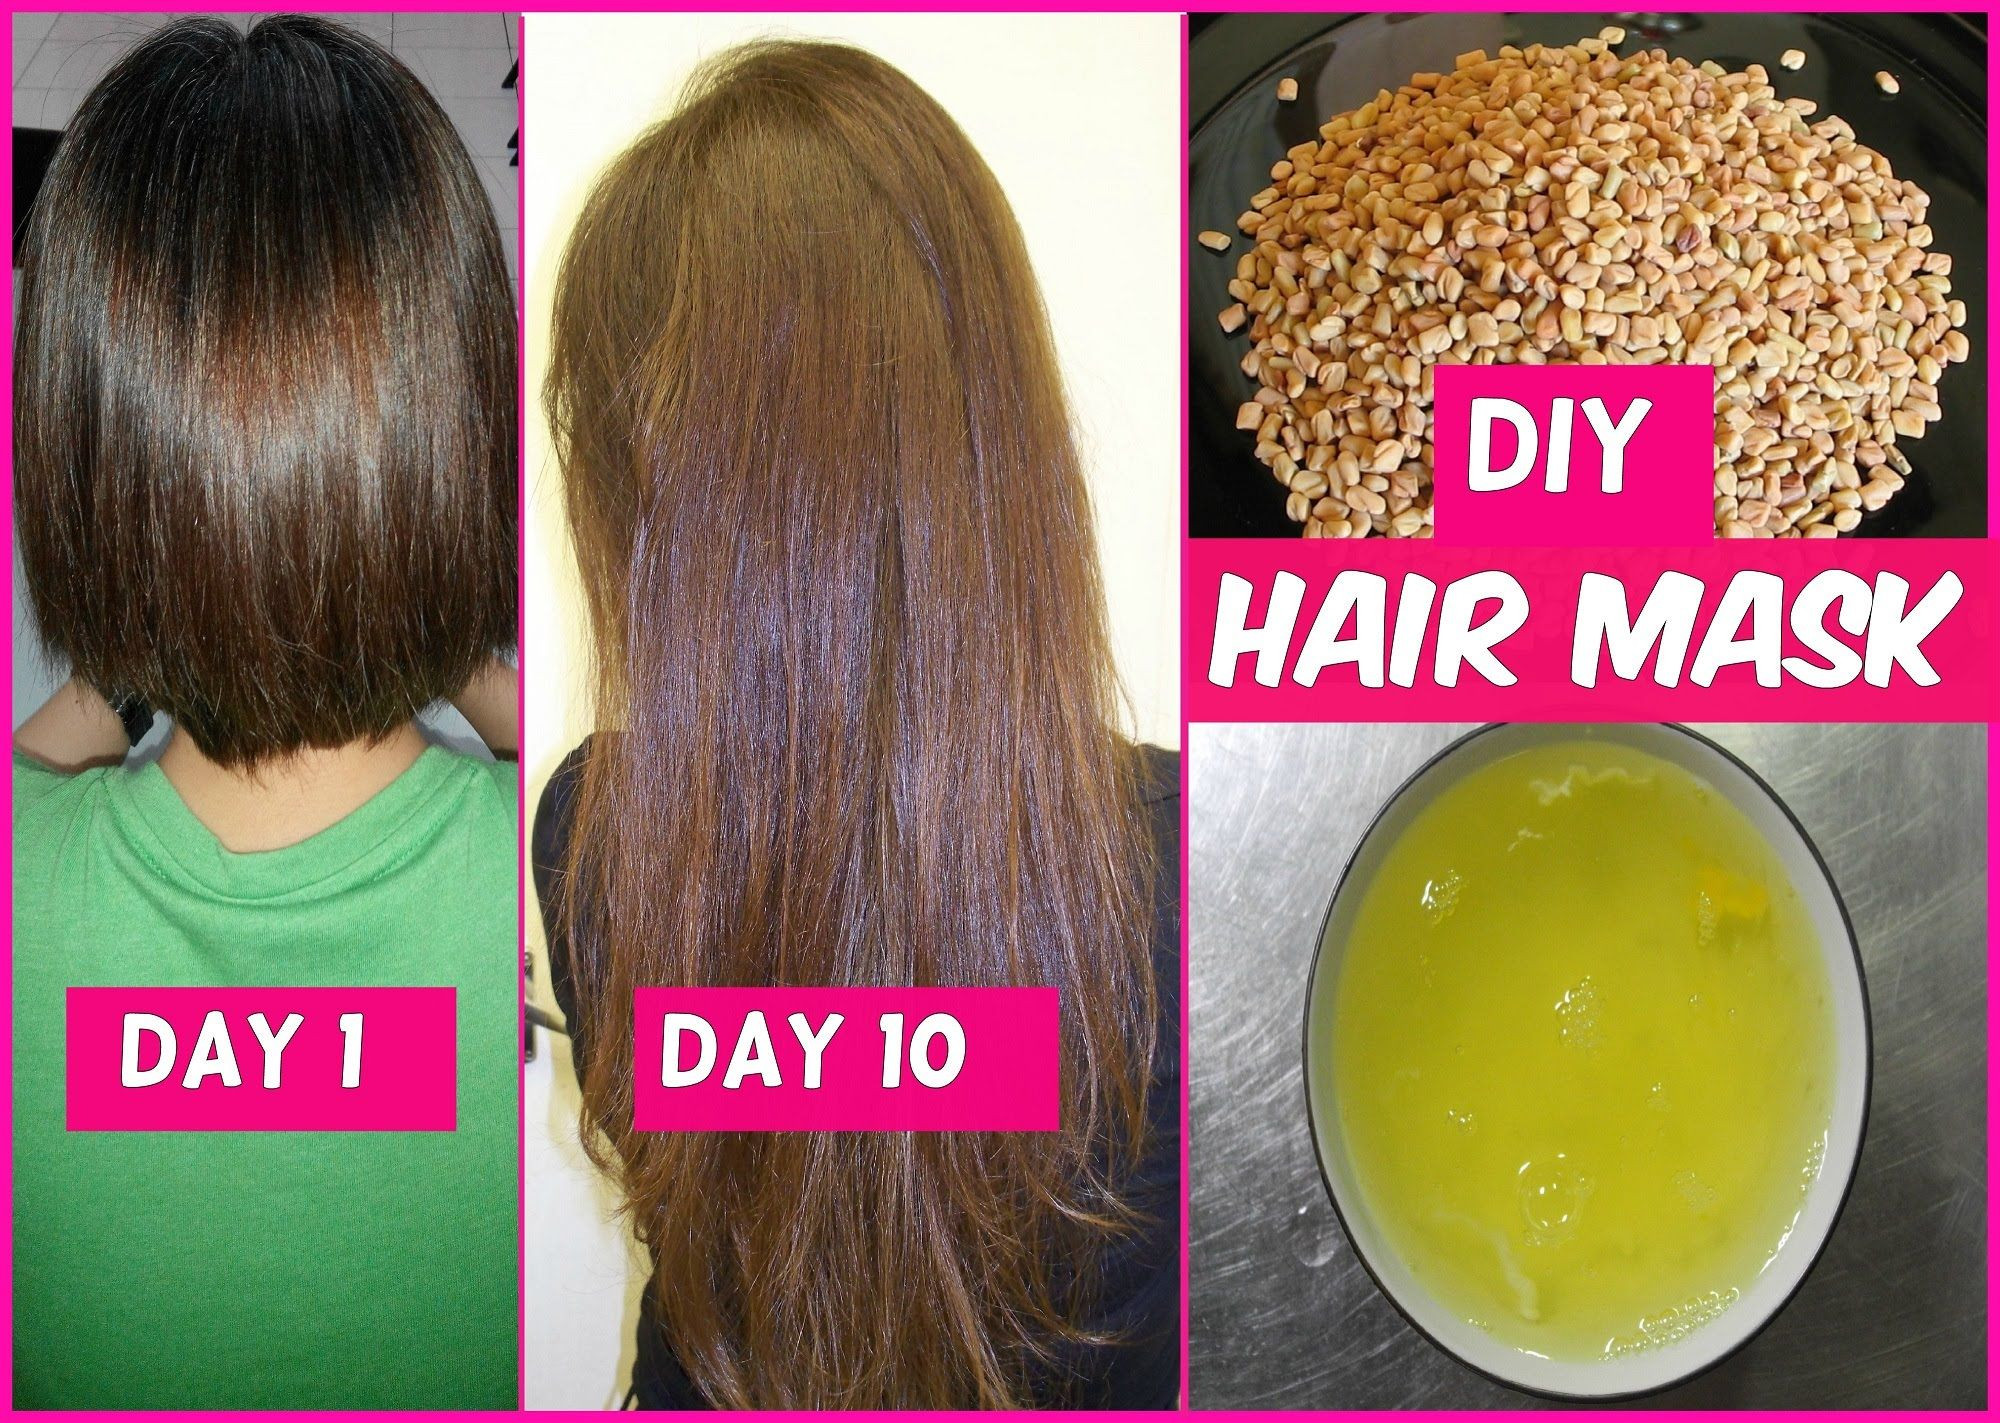 Best ideas about DIY Hair Growth Treatments . Save or Pin DIY Hair Mask for Long Hair Growth in 1 Week Now.